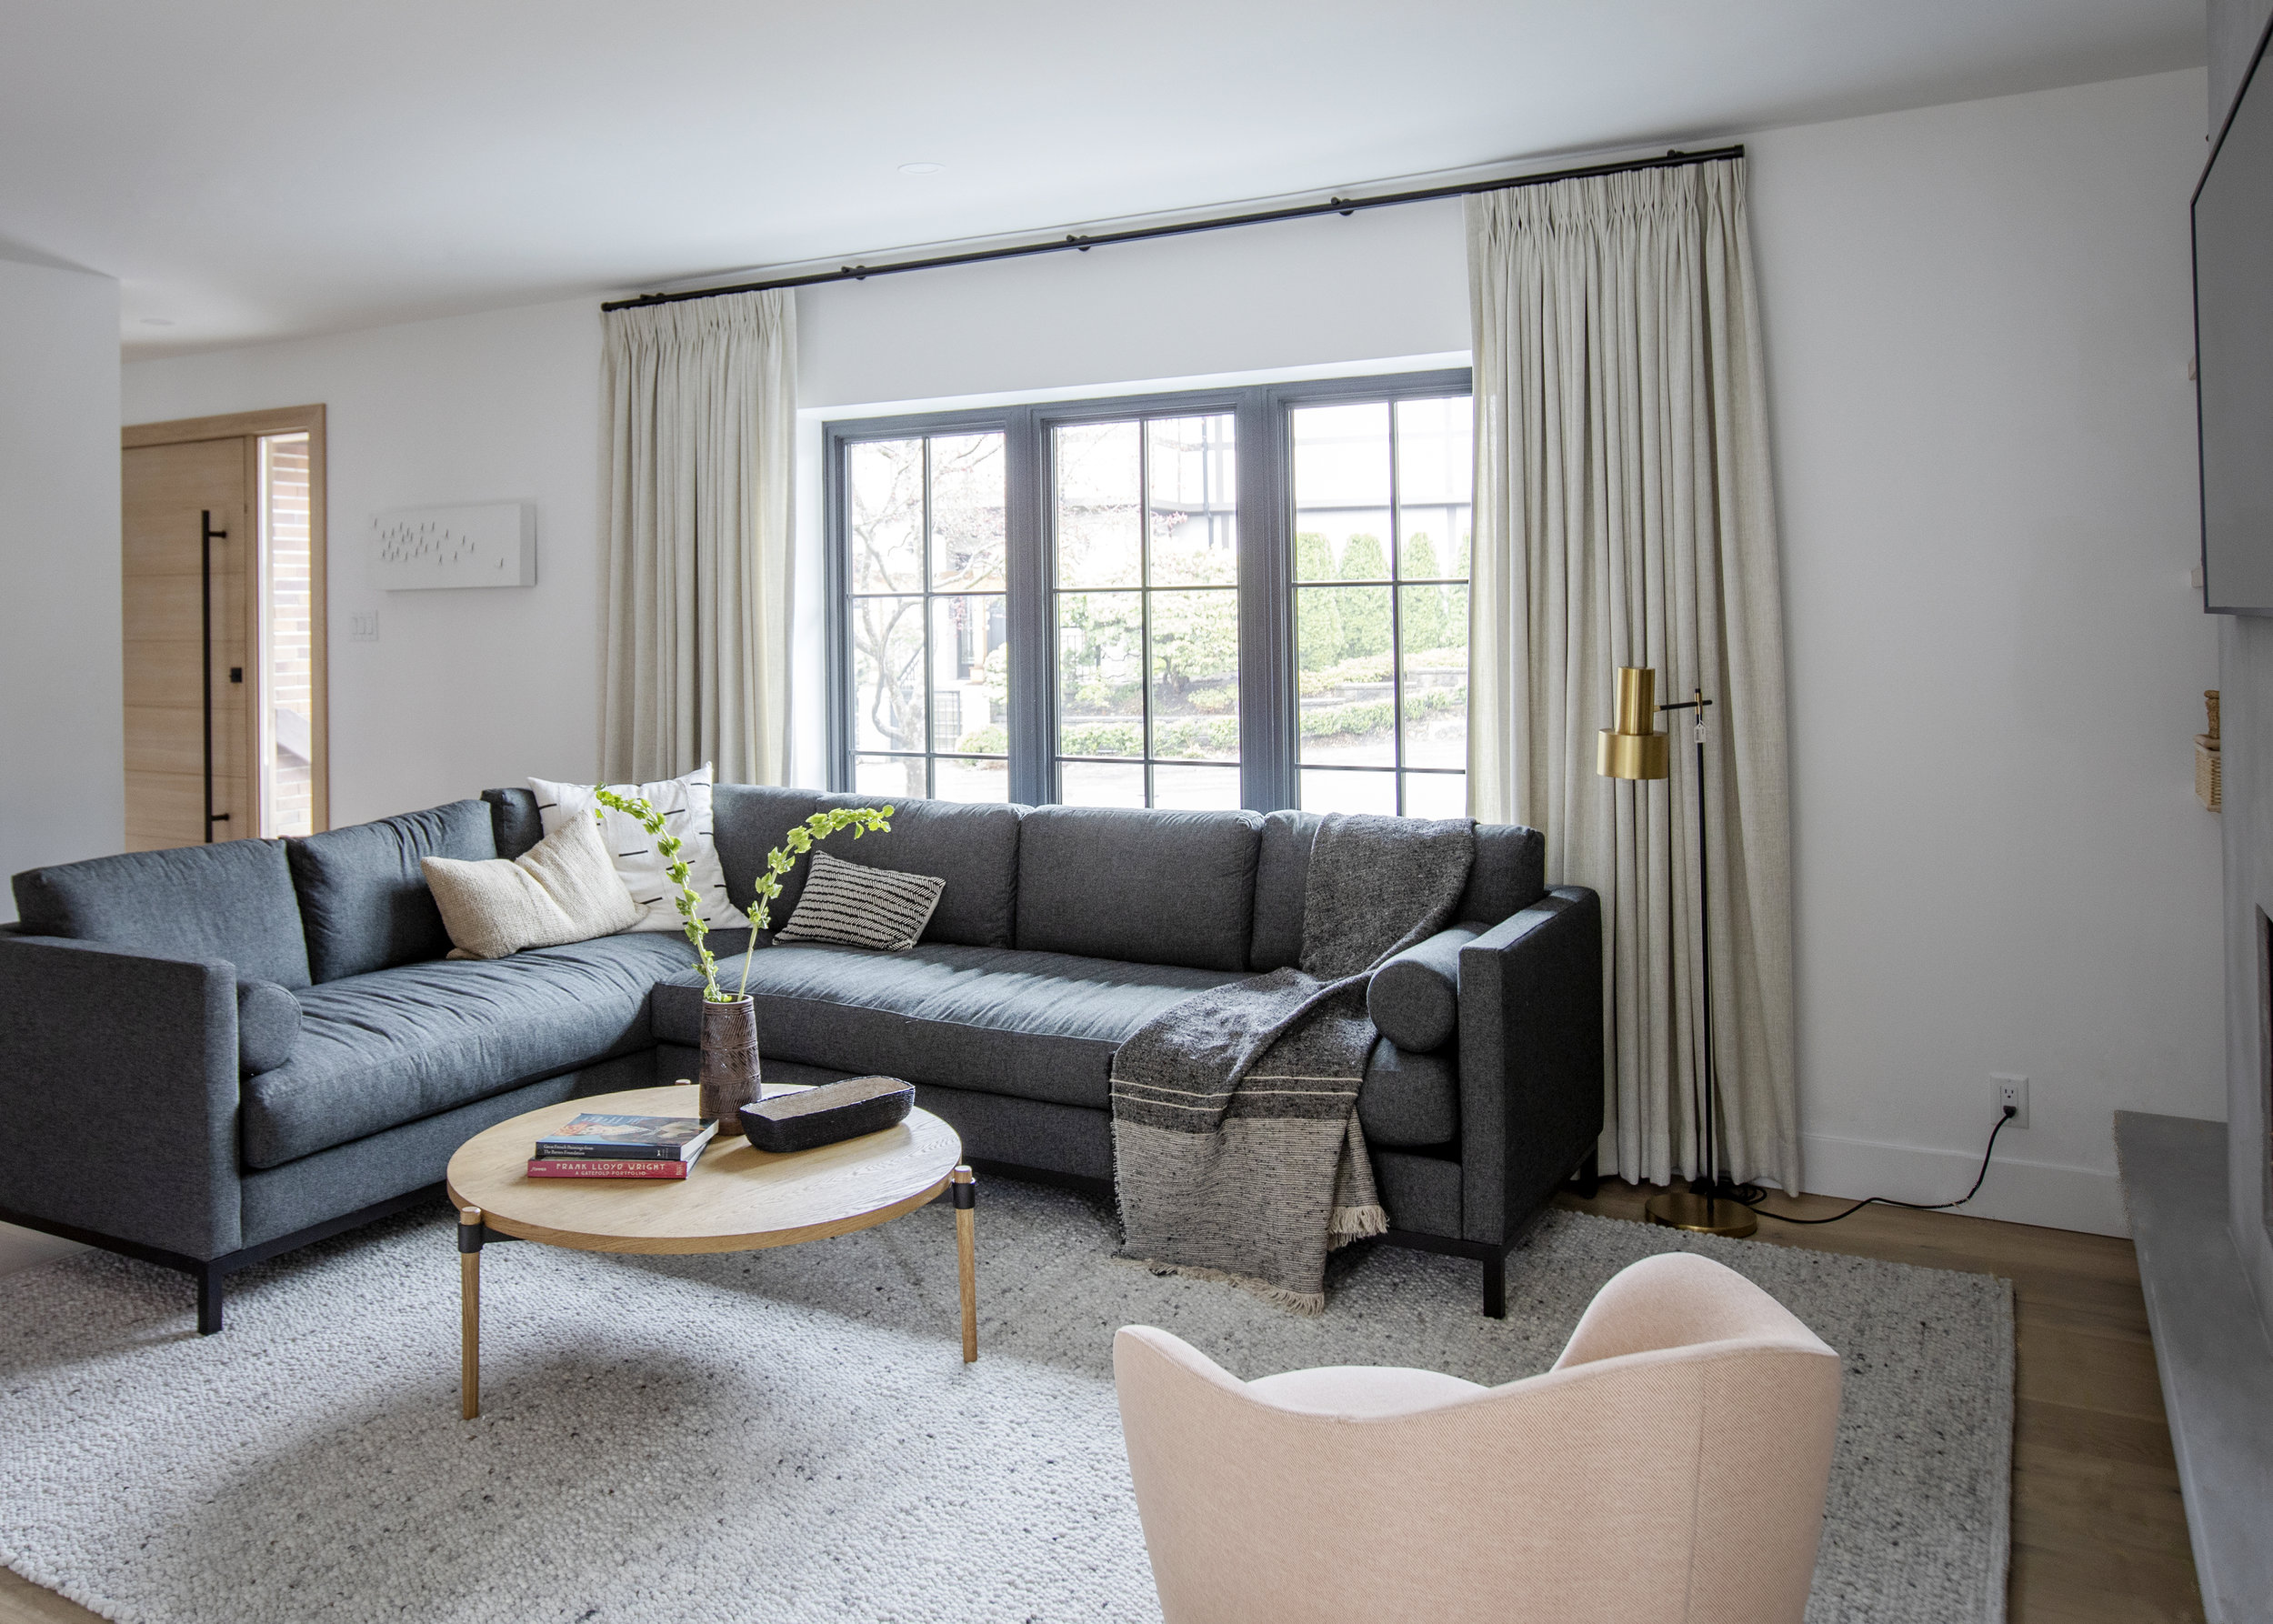 The modern and chic living room at Alderfield place, with L shaped couch and white accent armchair.